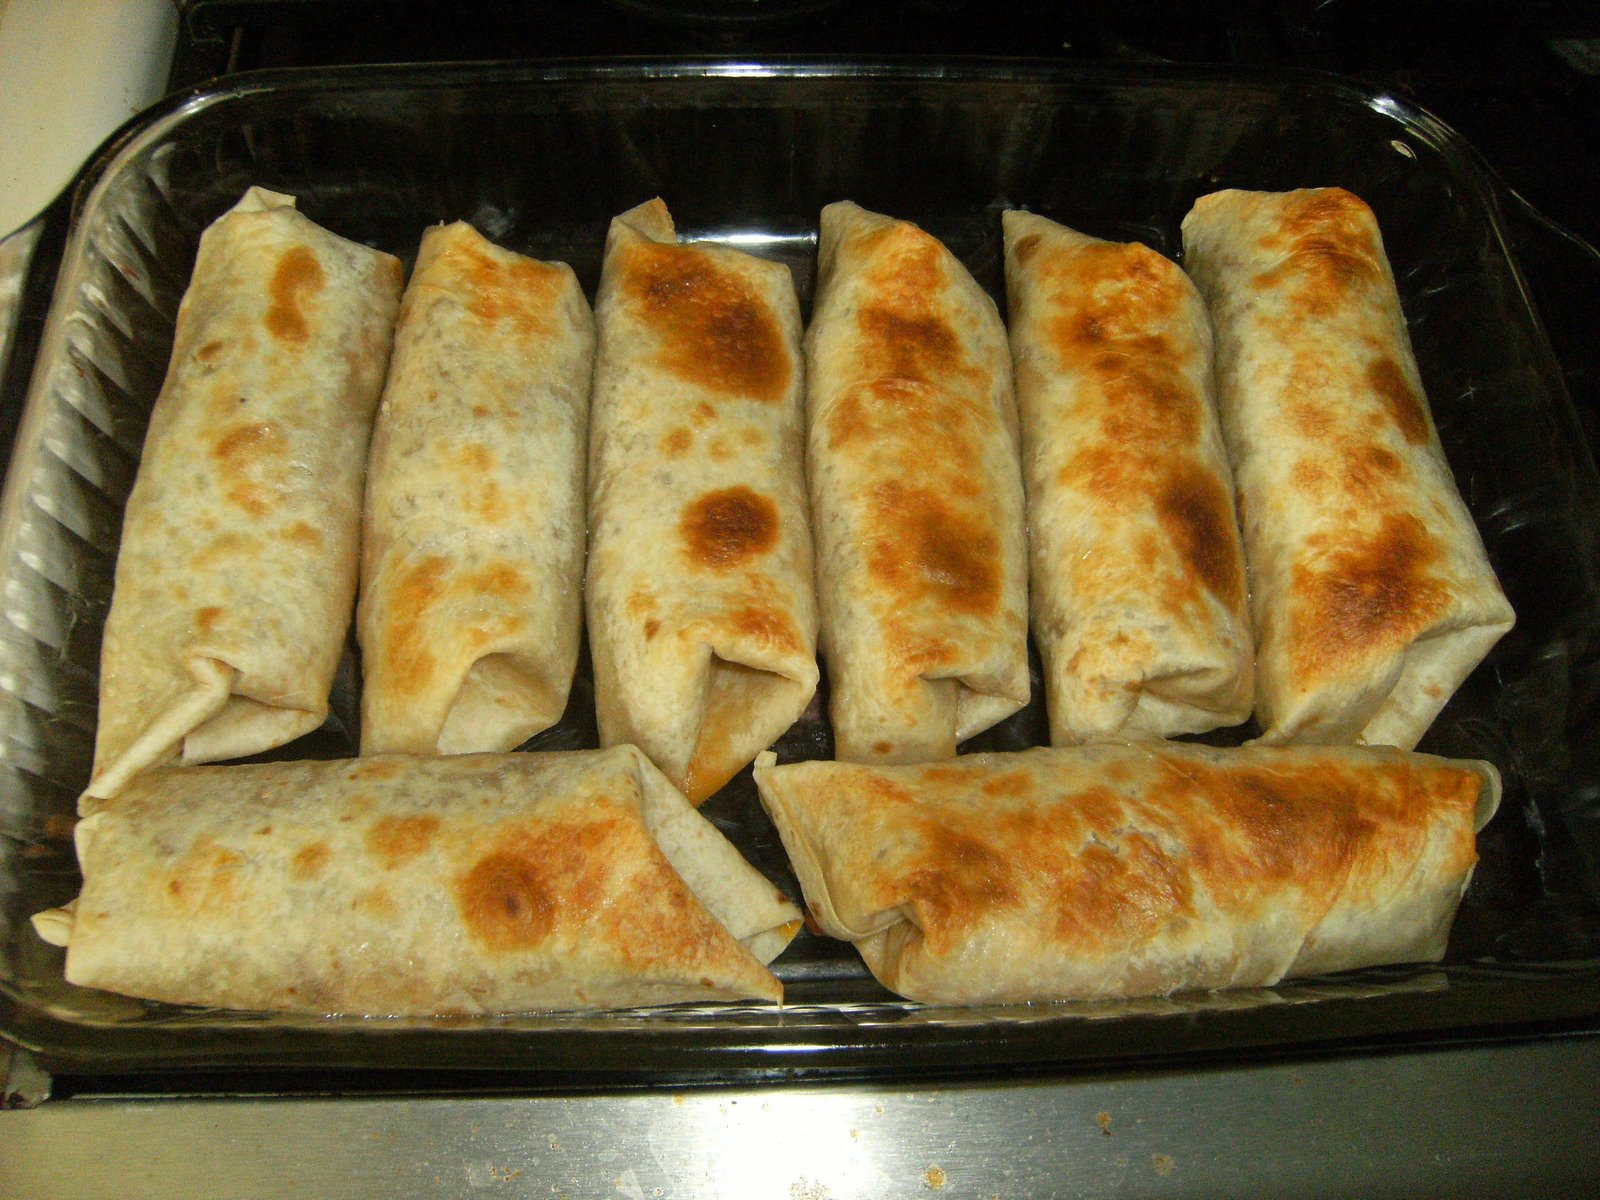 The Crew 365 Baked Burritos